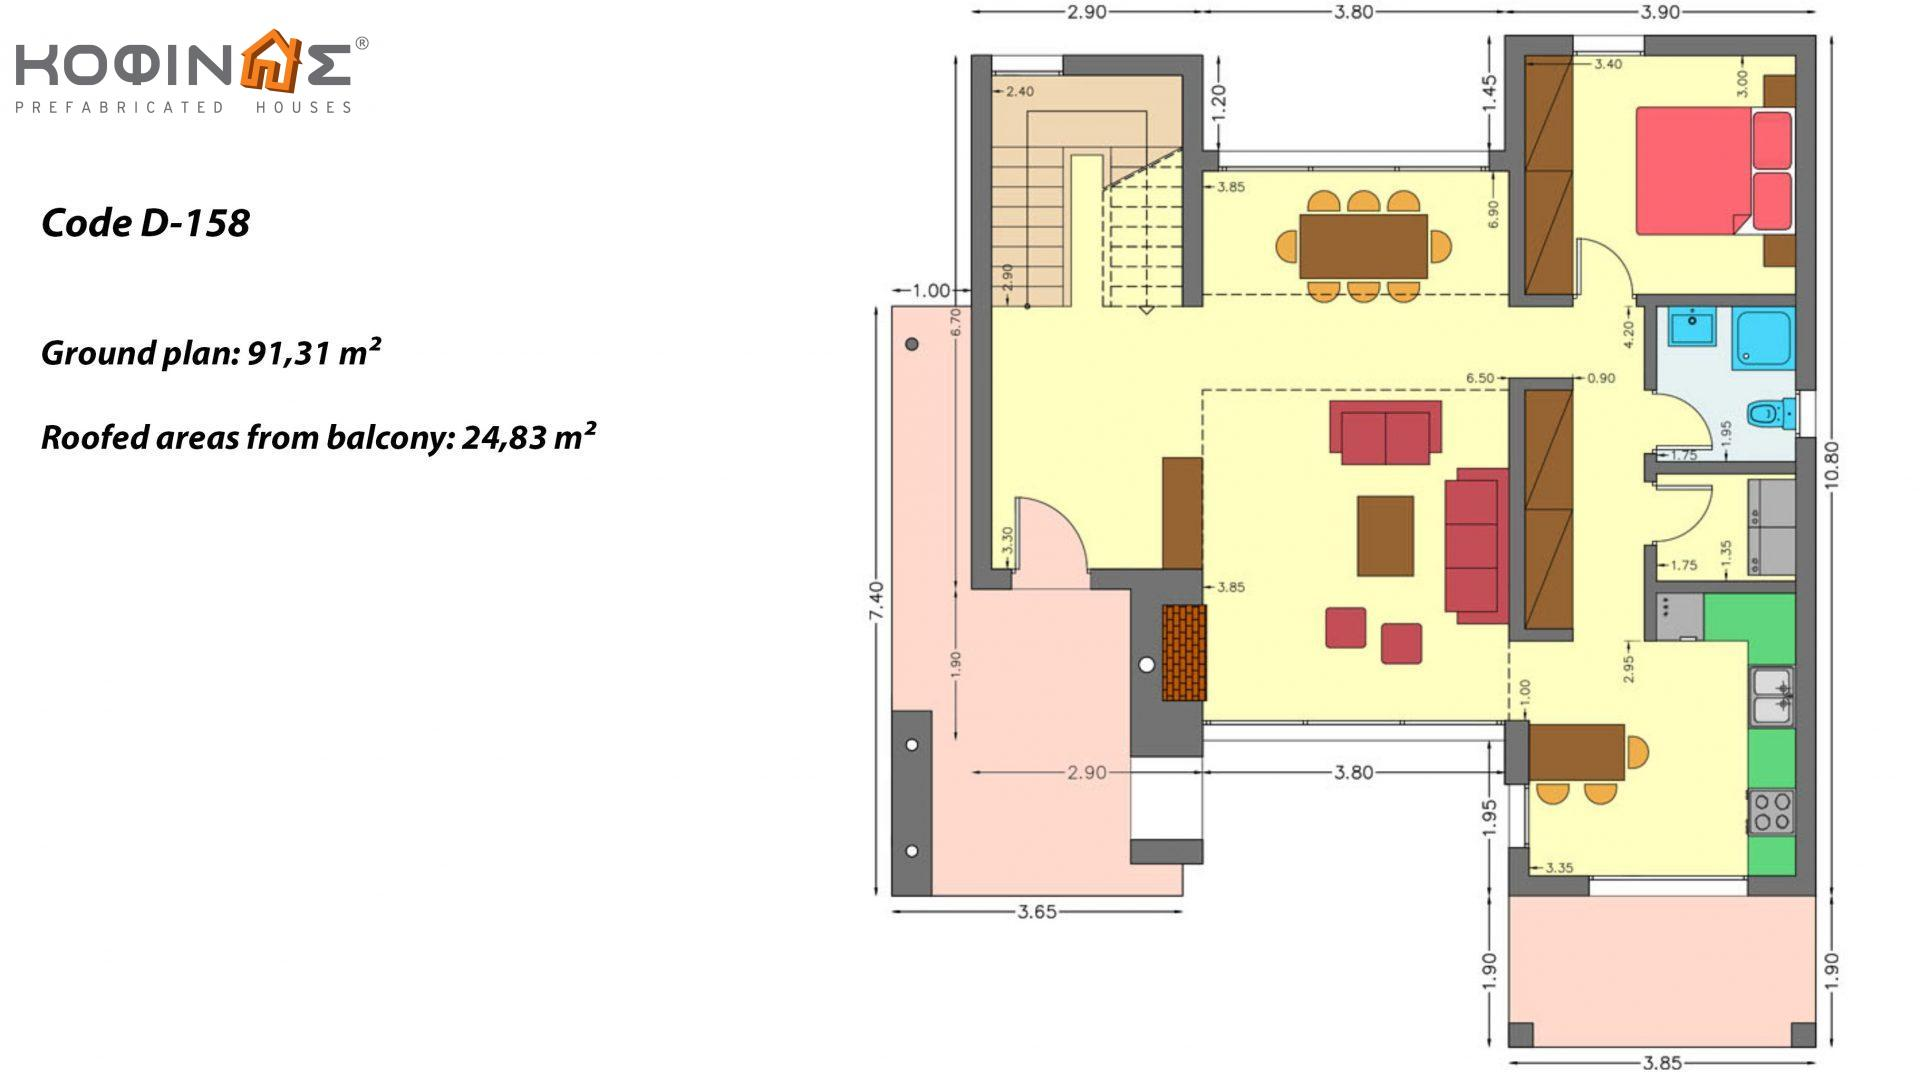 2-story house D-158, total surface of 158,51 m²,roofed areas 29.45 m²,balconies 24.83 m²